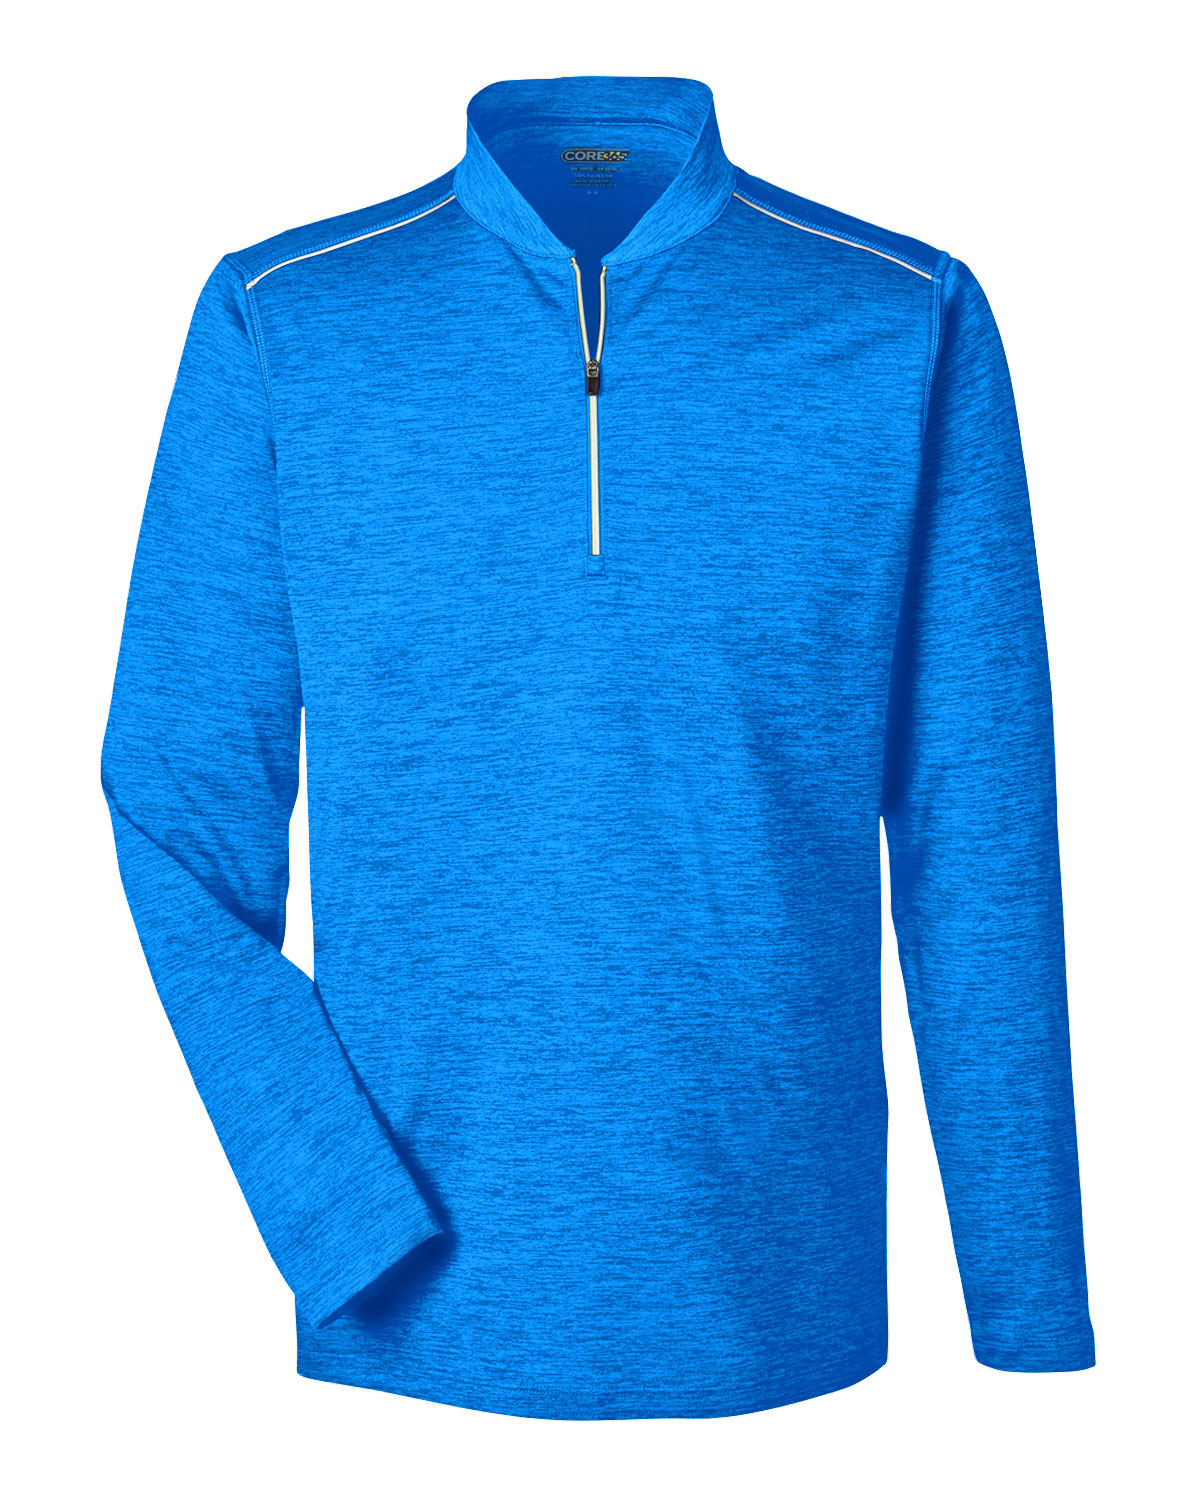 Ash City Core 365 Mens Kinetic Performance 1/4-Zip